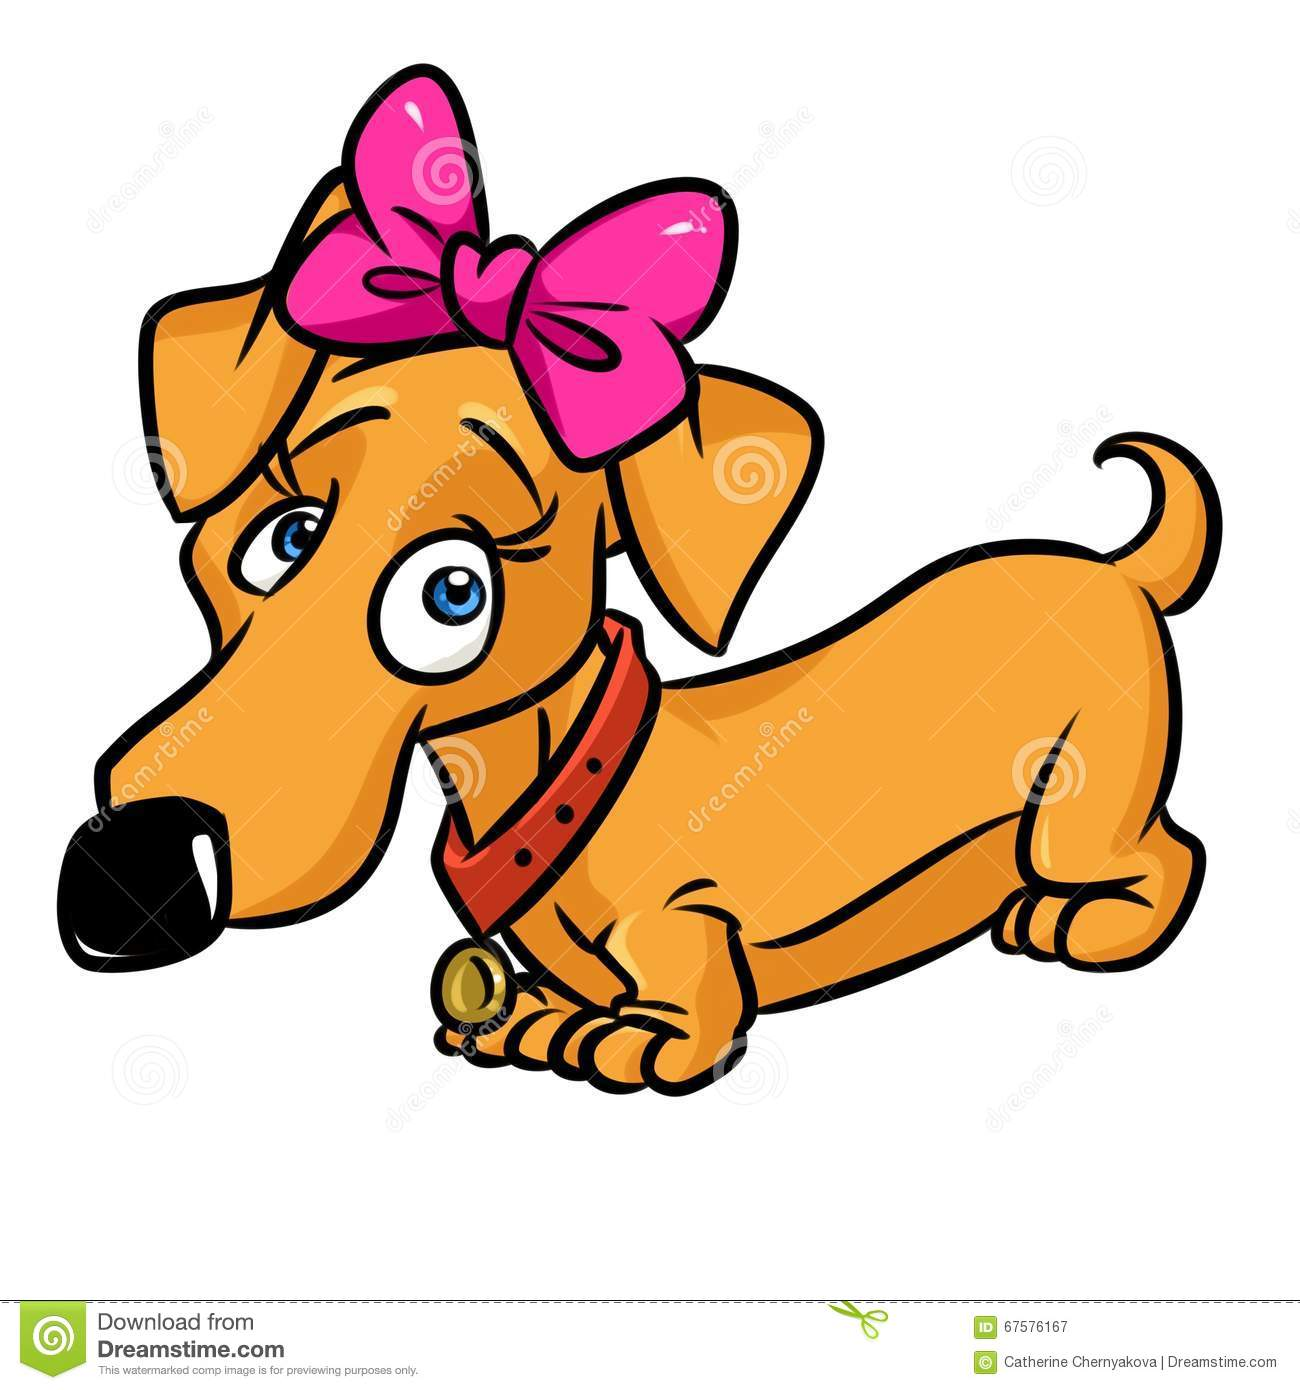 Dachshund Cute Girl Cartoon Illustration Stock Illustration - Image ...